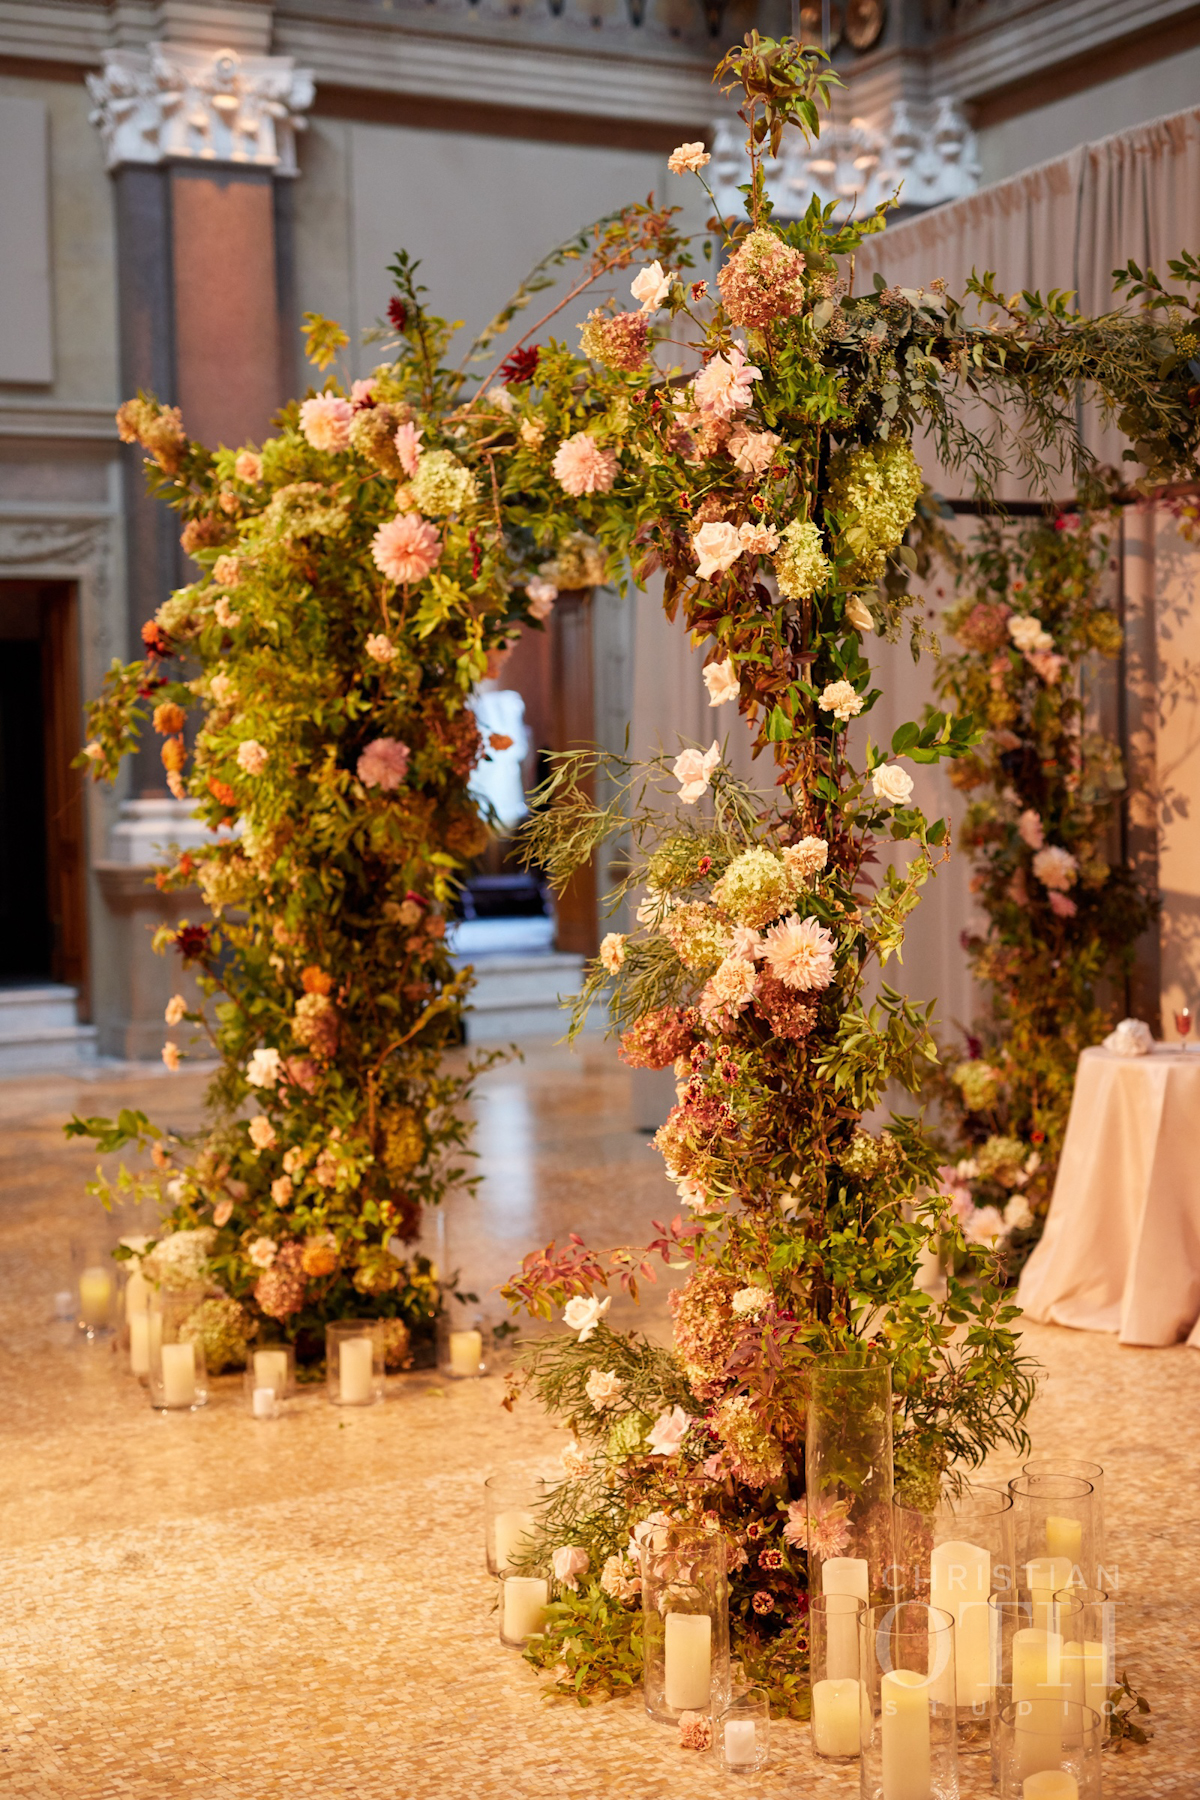 Weylin wedding, Ang Weddings and Events, Christian Oth Studios, Poppies and Posies chuppah